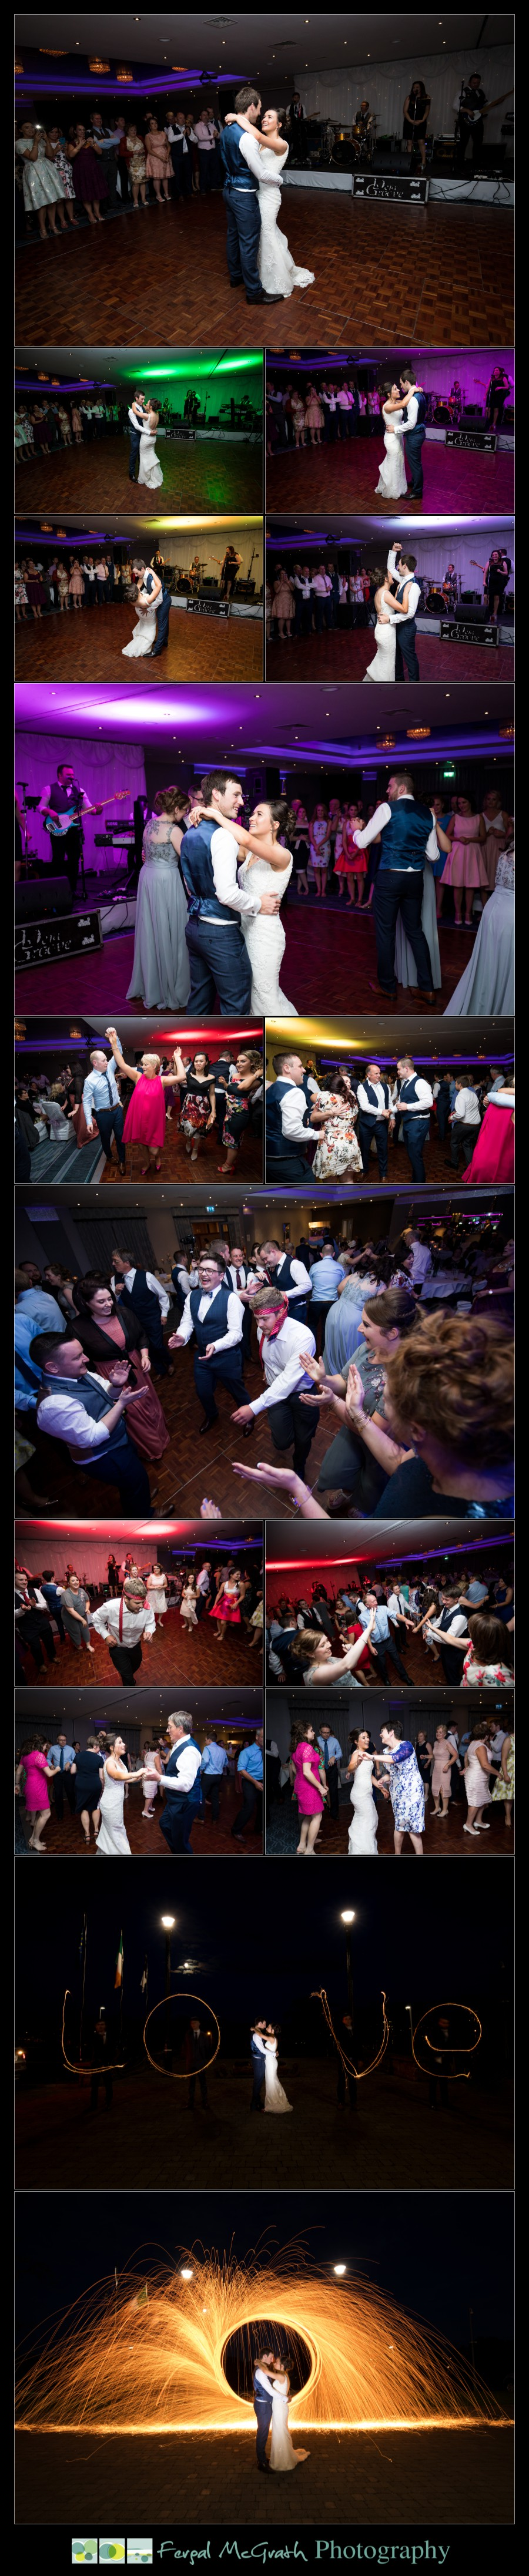 Clayton Hotel Sligo Wedding first dance photos